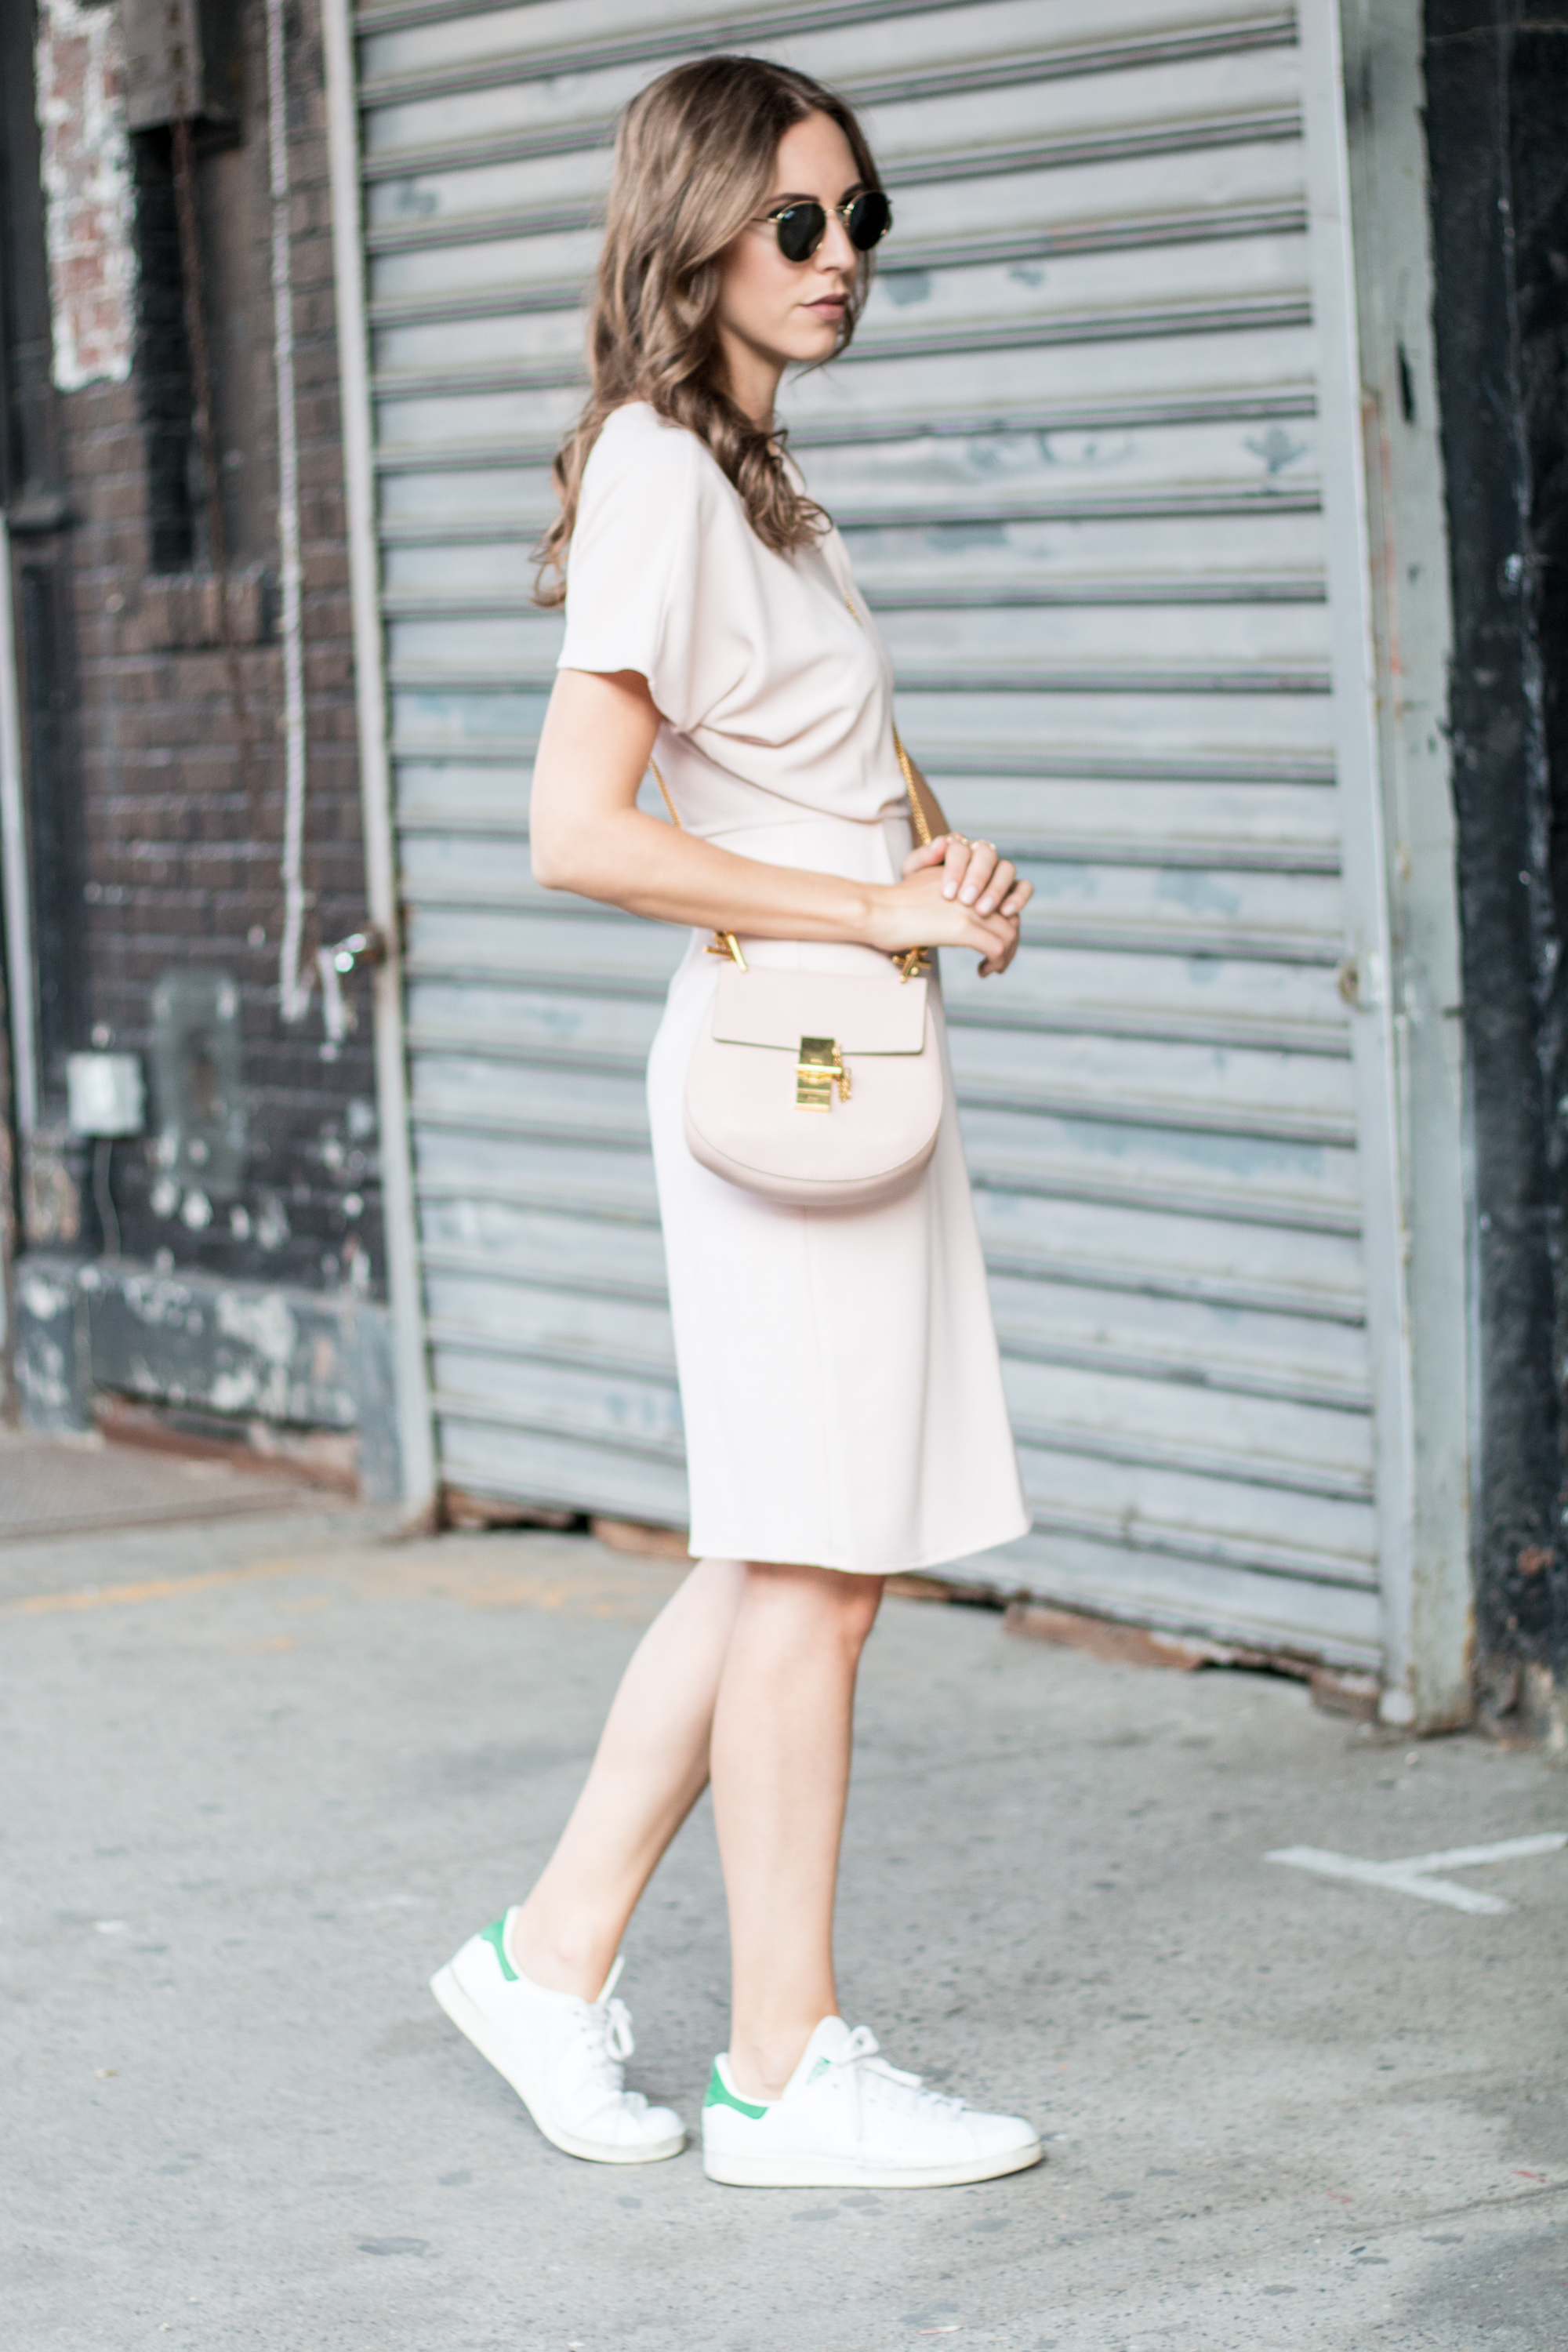 New-York-Travel-Diary-Meatpacking-7